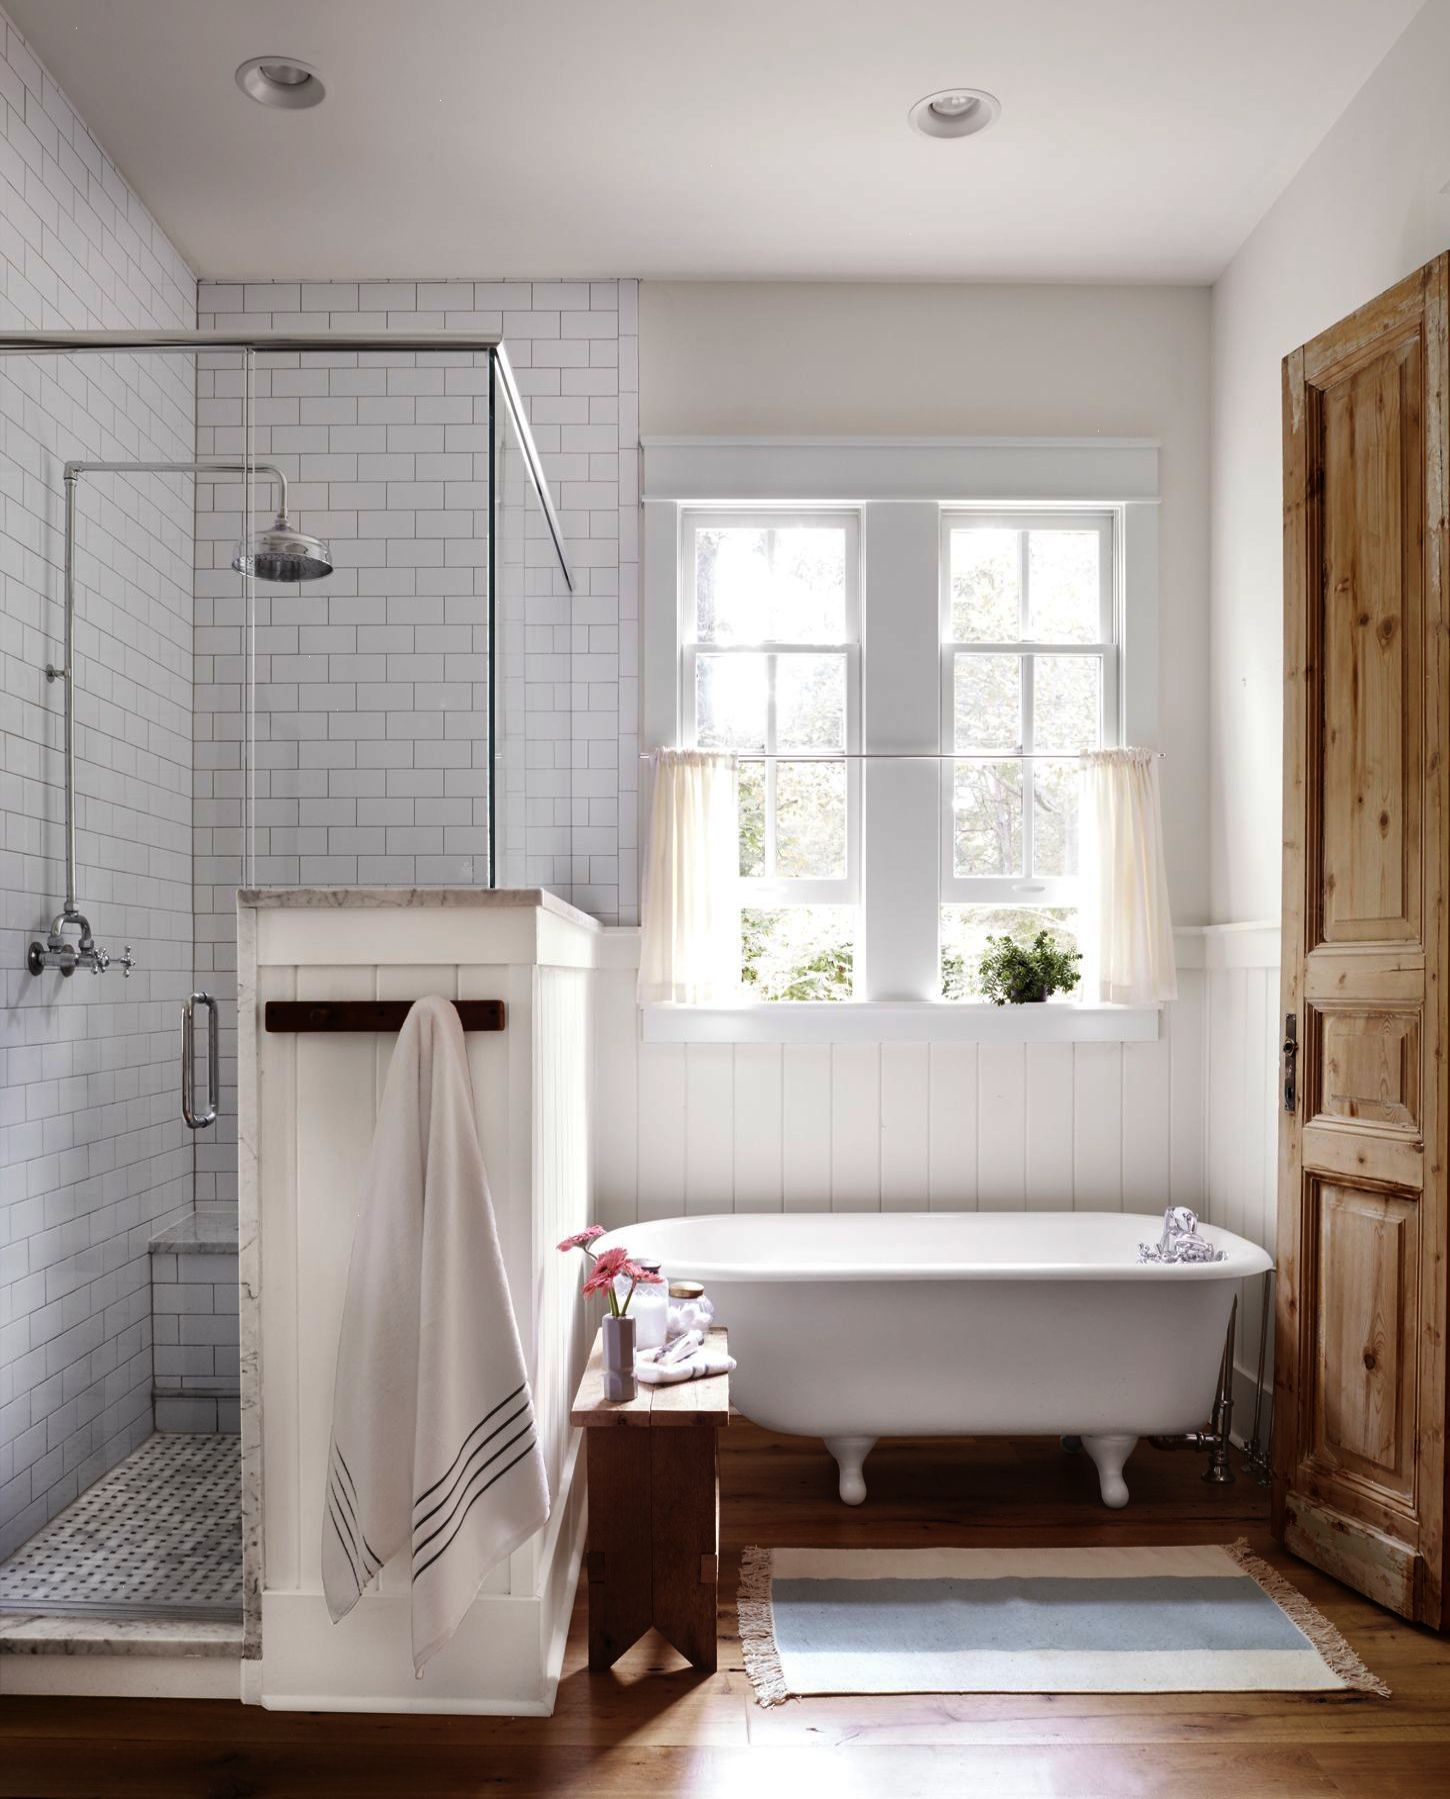 White Modern Country Bathroom With Clawfoot Tub Walk In Shower